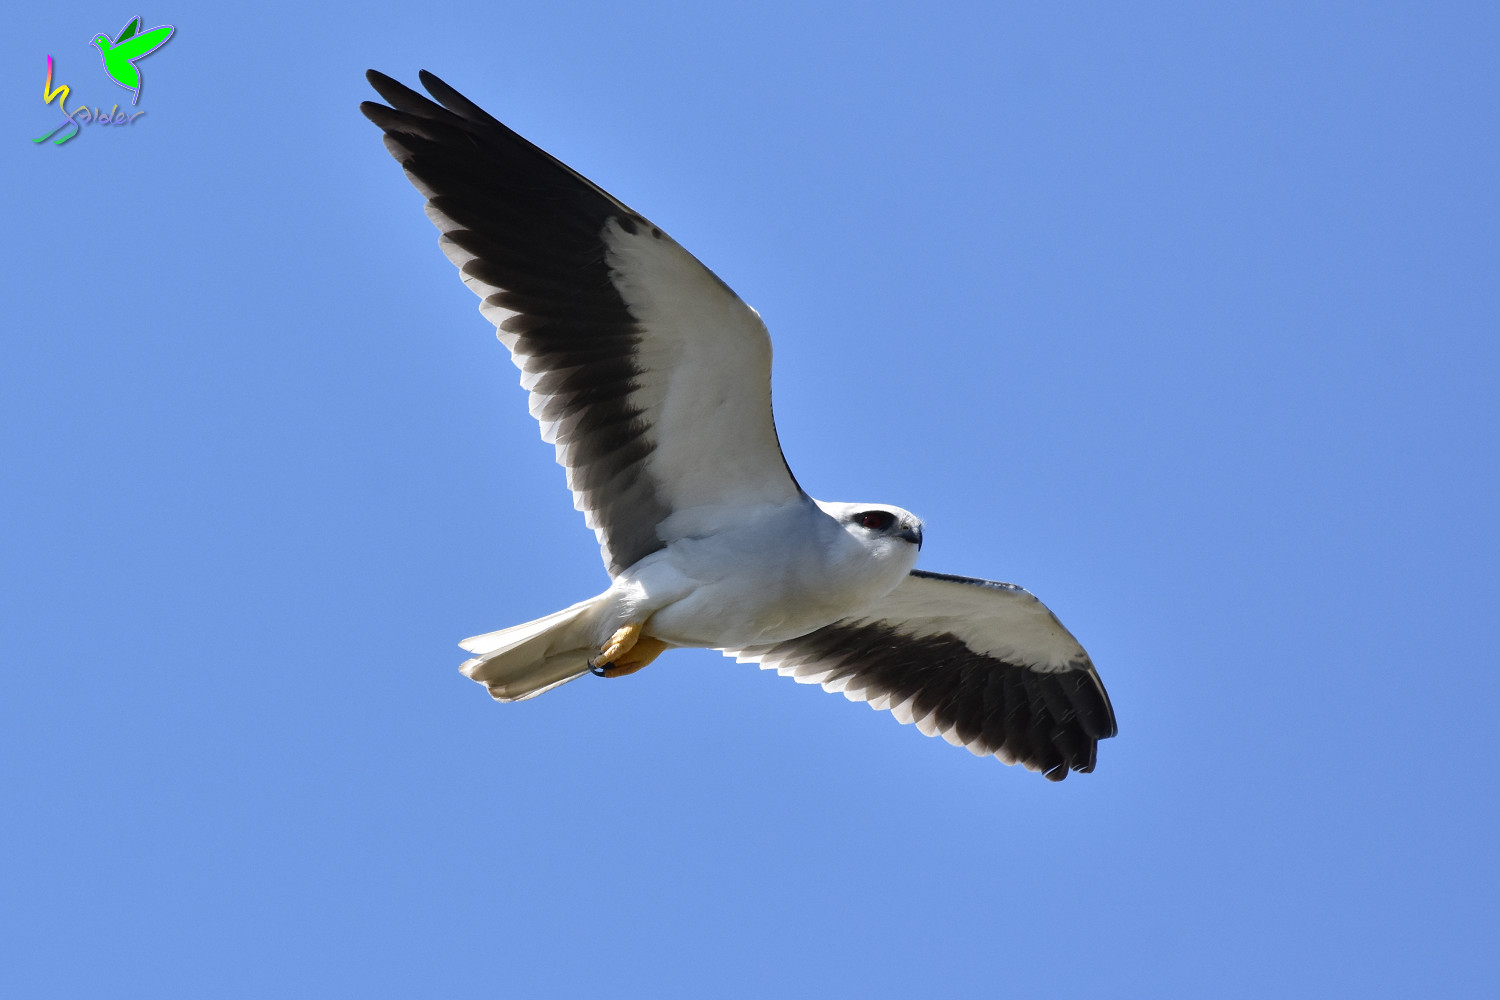 Black-winged_Kite_2310